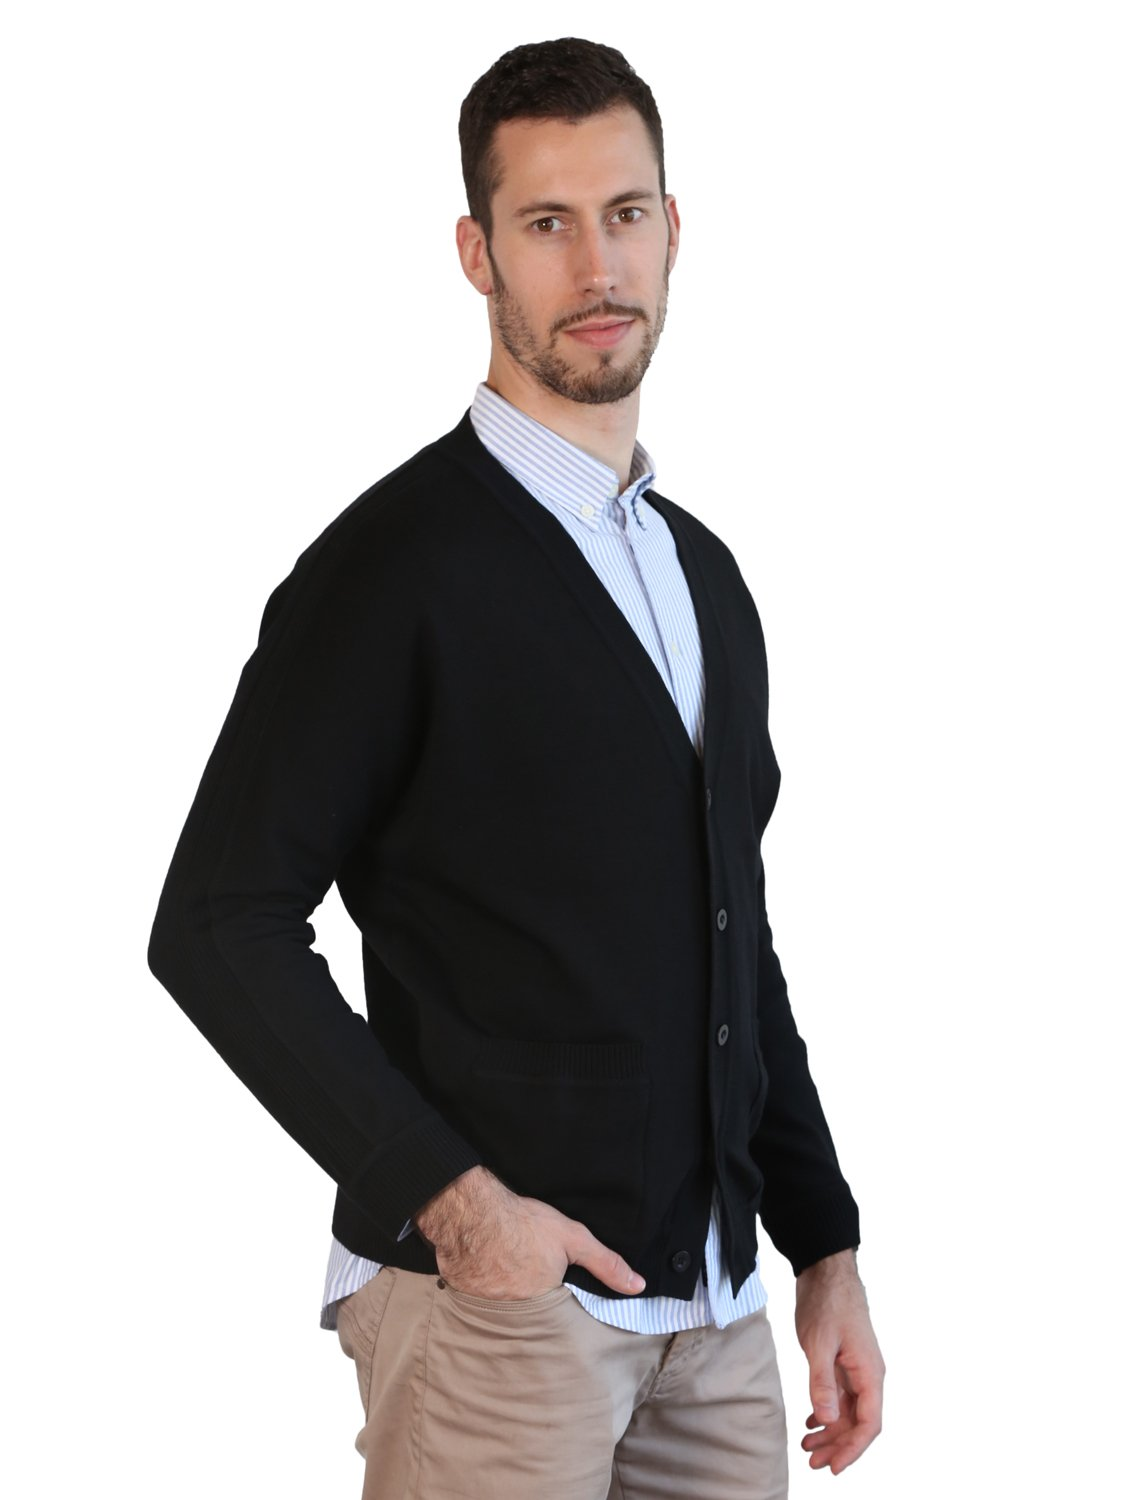 MARMO DI CARRARA Mens Black Cardigan 100% Merino Wool Knitted Classic Sweater V-Neck Button UP